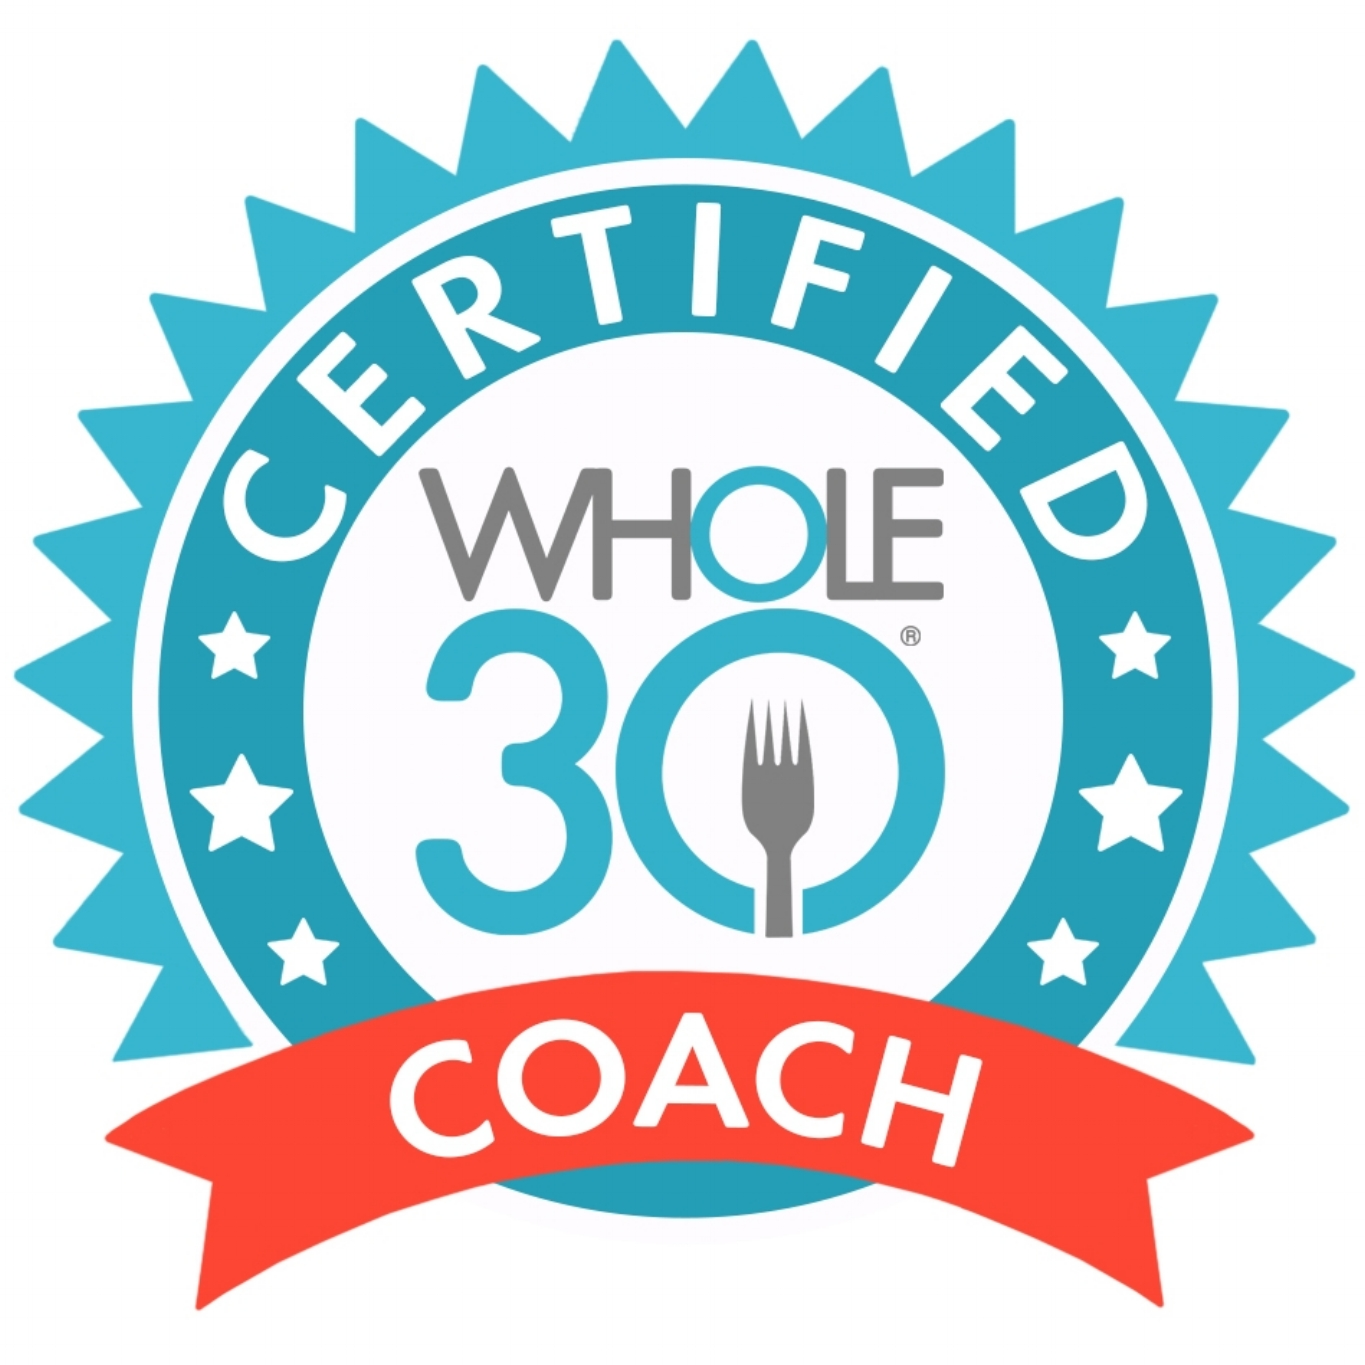 Information on Kelly's whole30 coaching packages